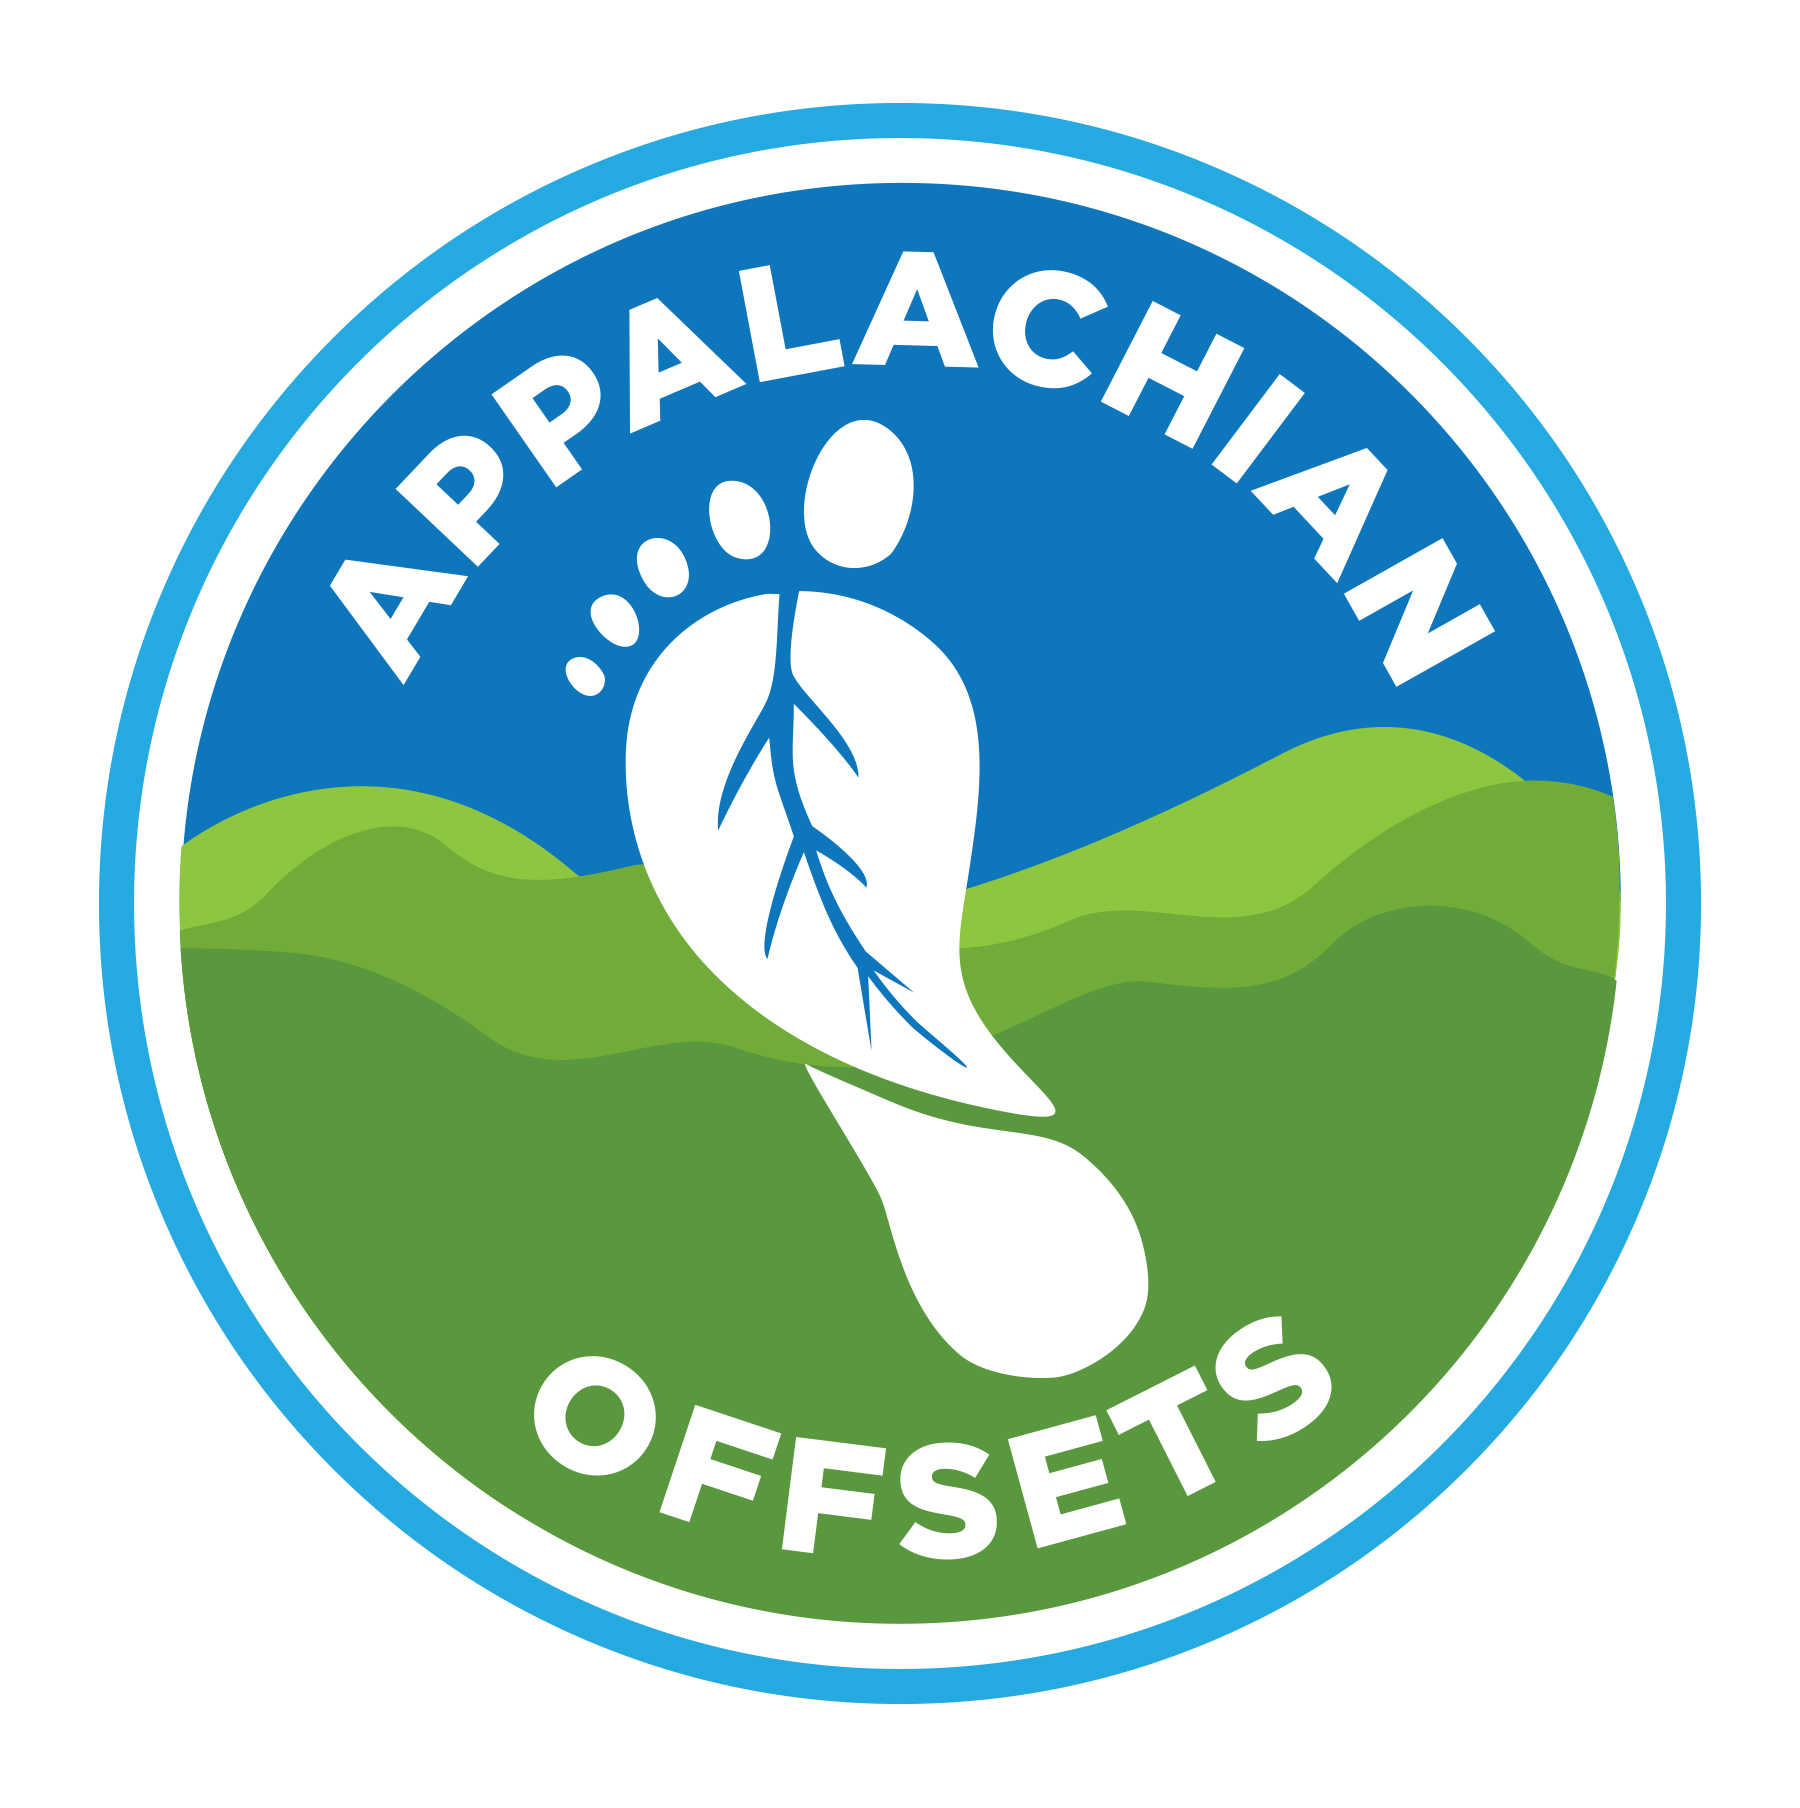 Appalachian Offsets